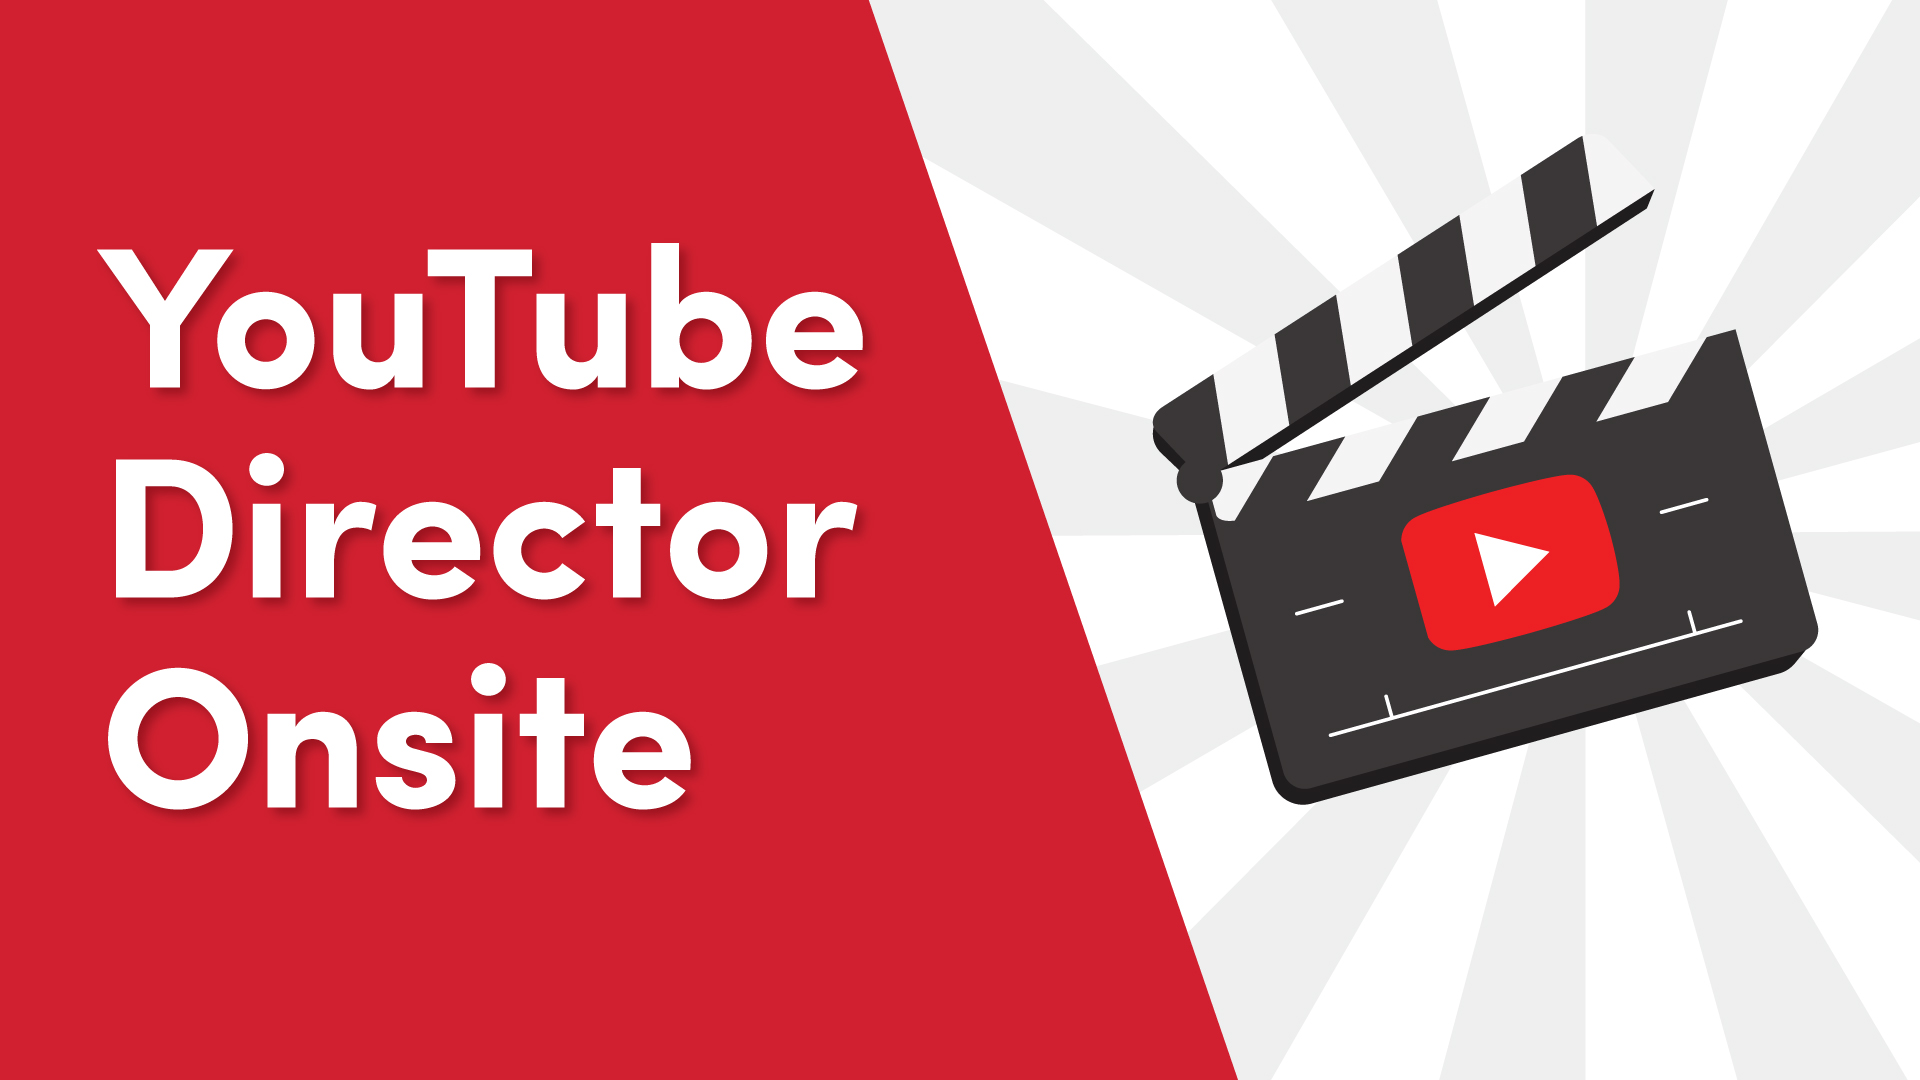 RevLocal Marketing Refresh: Introducing YouTube Director Onsite